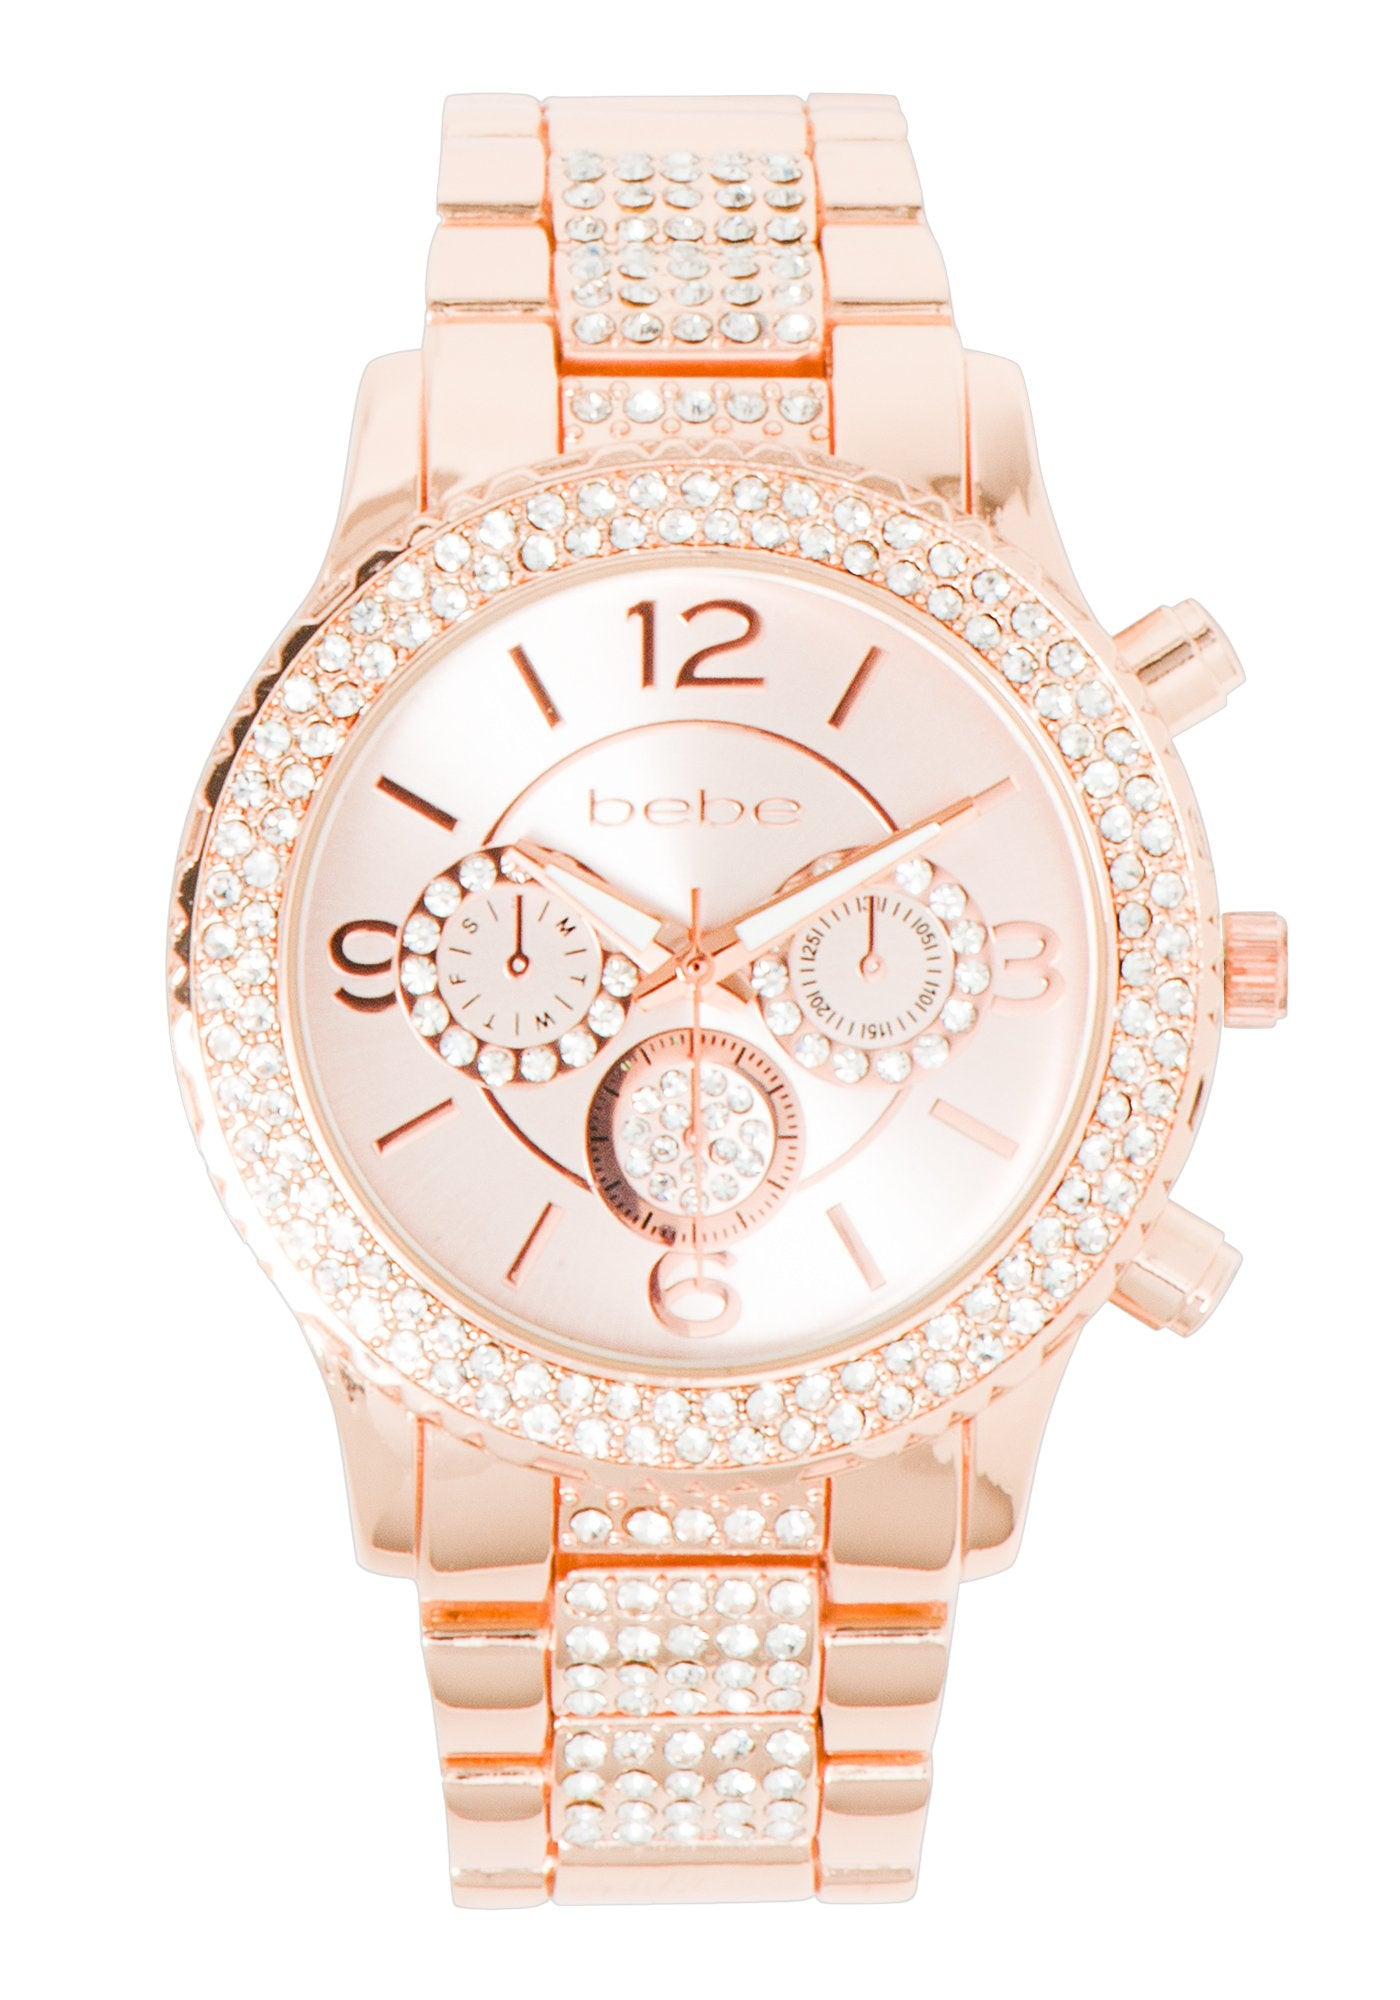 Women's Bebe Crystal Pave Watch in ROSE GOLD Metal